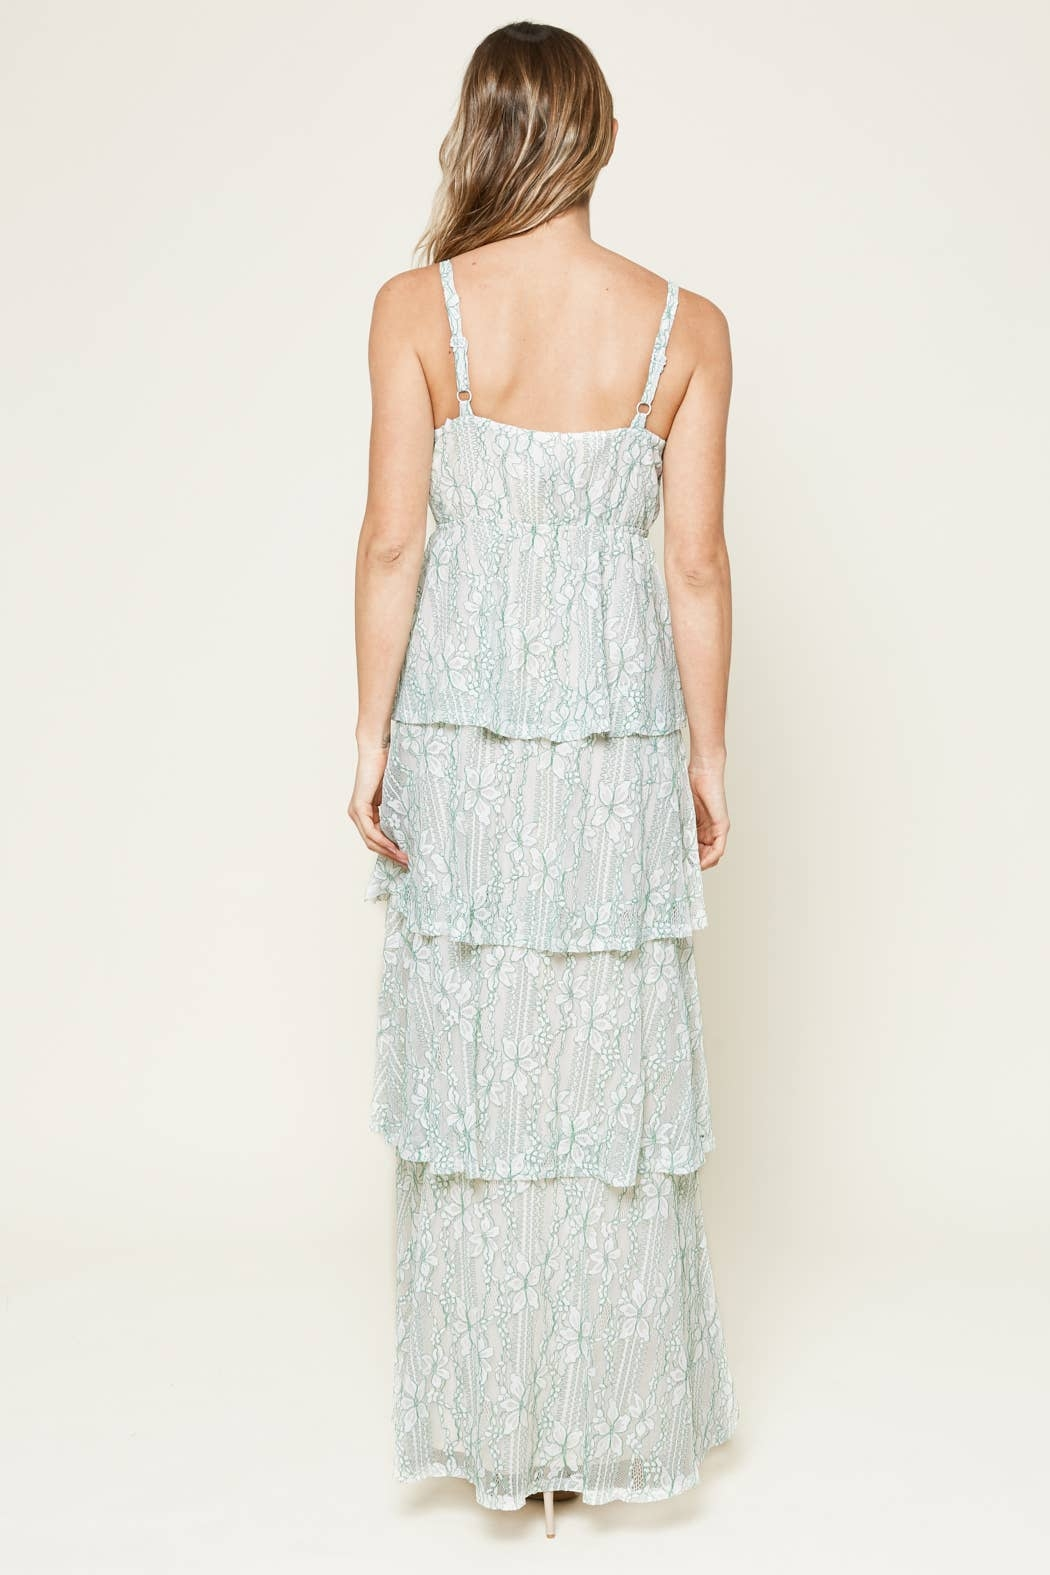 Sugarlips Good Life Tiered Lace Maxi Dress - Side Cropped Image